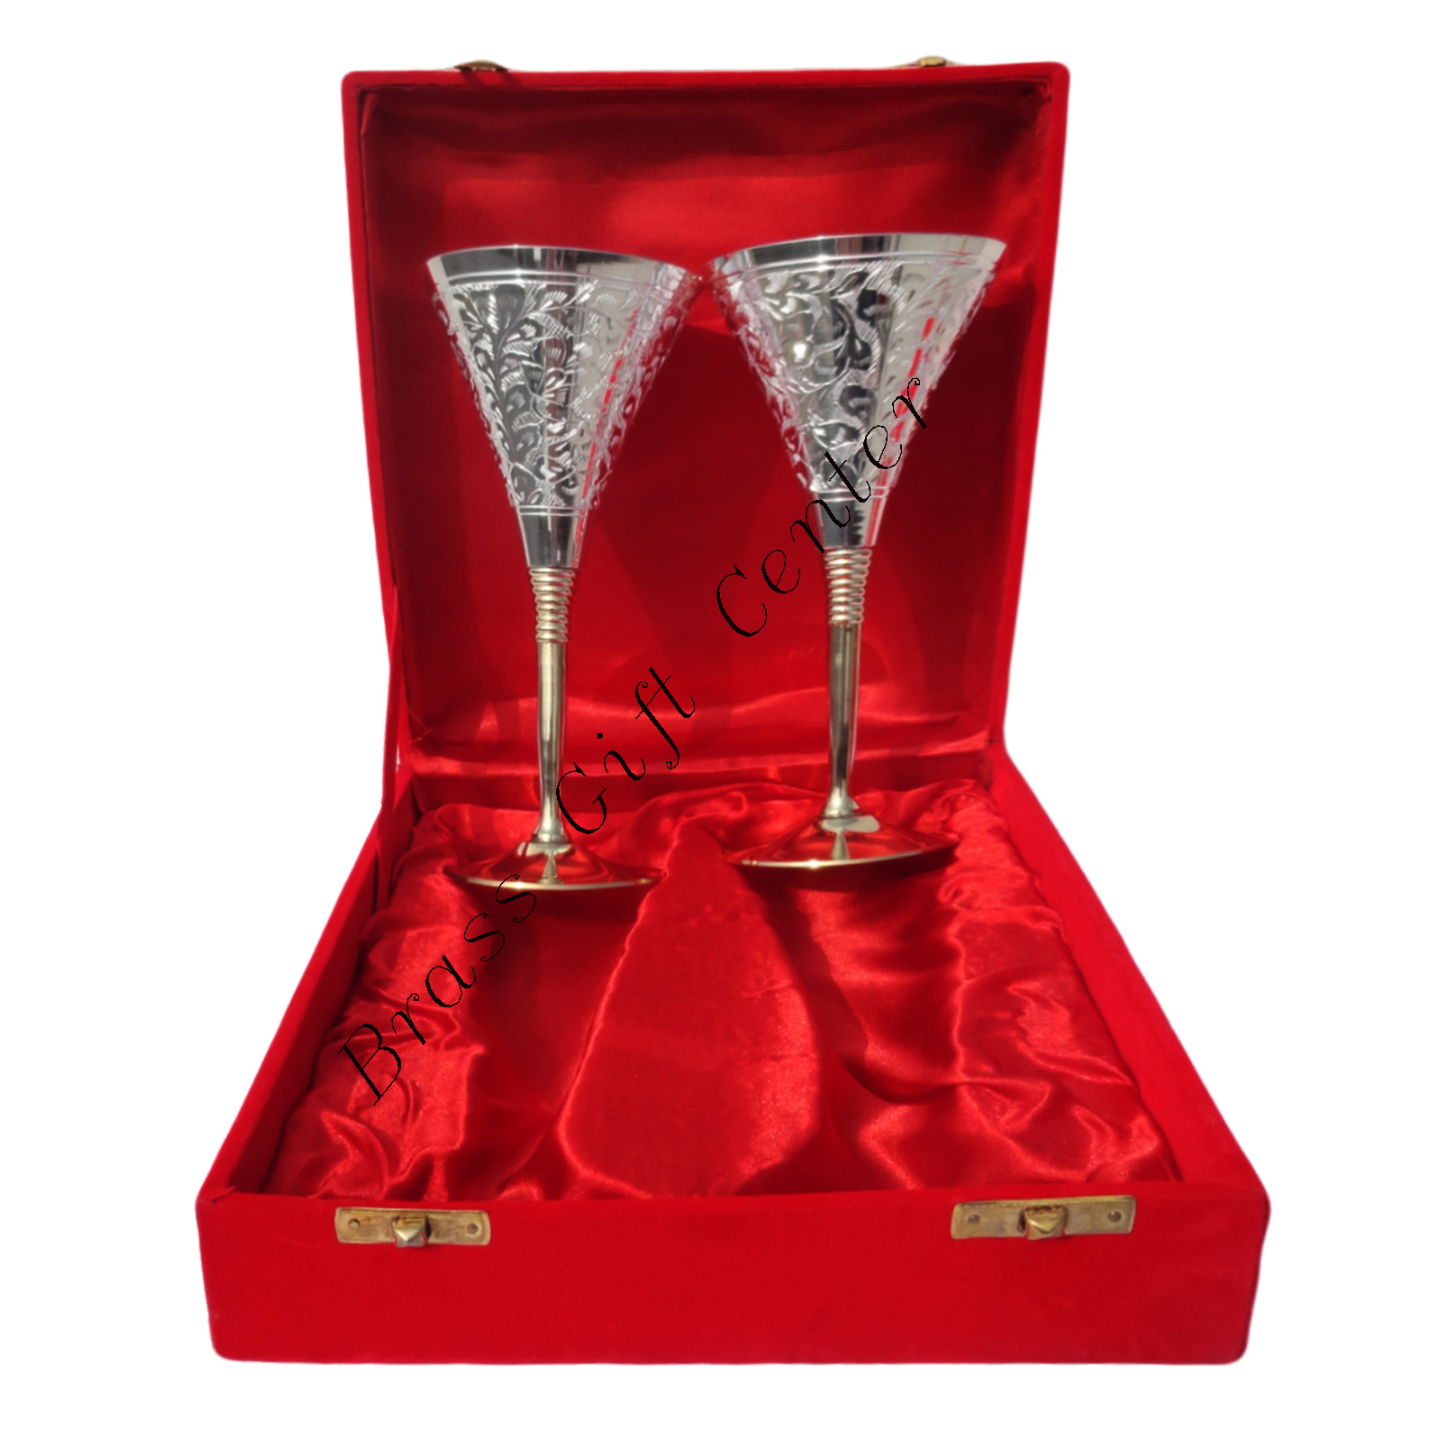 Brass Goblet Set Of 2 PCs In Rwd Velvet Box B077